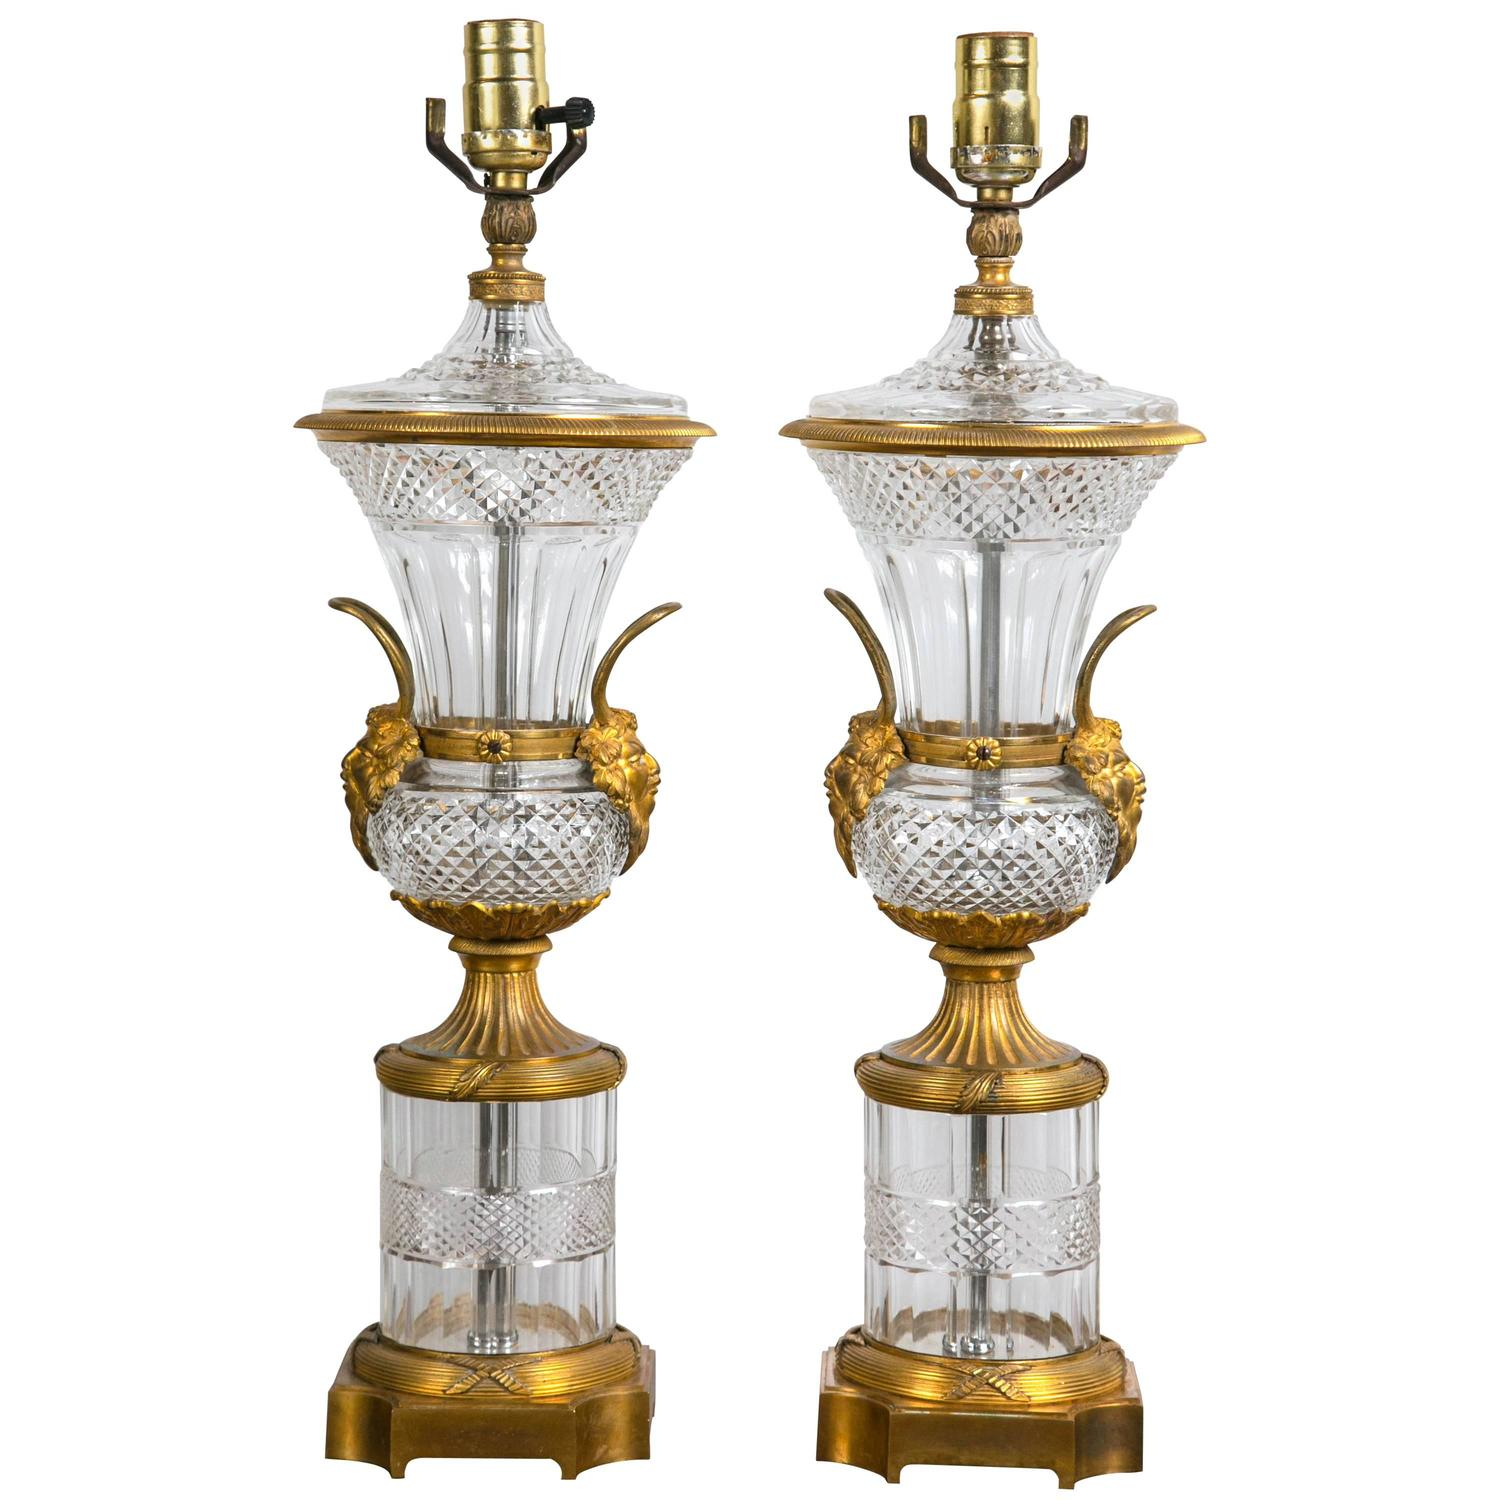 baccarat crystal lamps for sale at 1stdibs. Black Bedroom Furniture Sets. Home Design Ideas